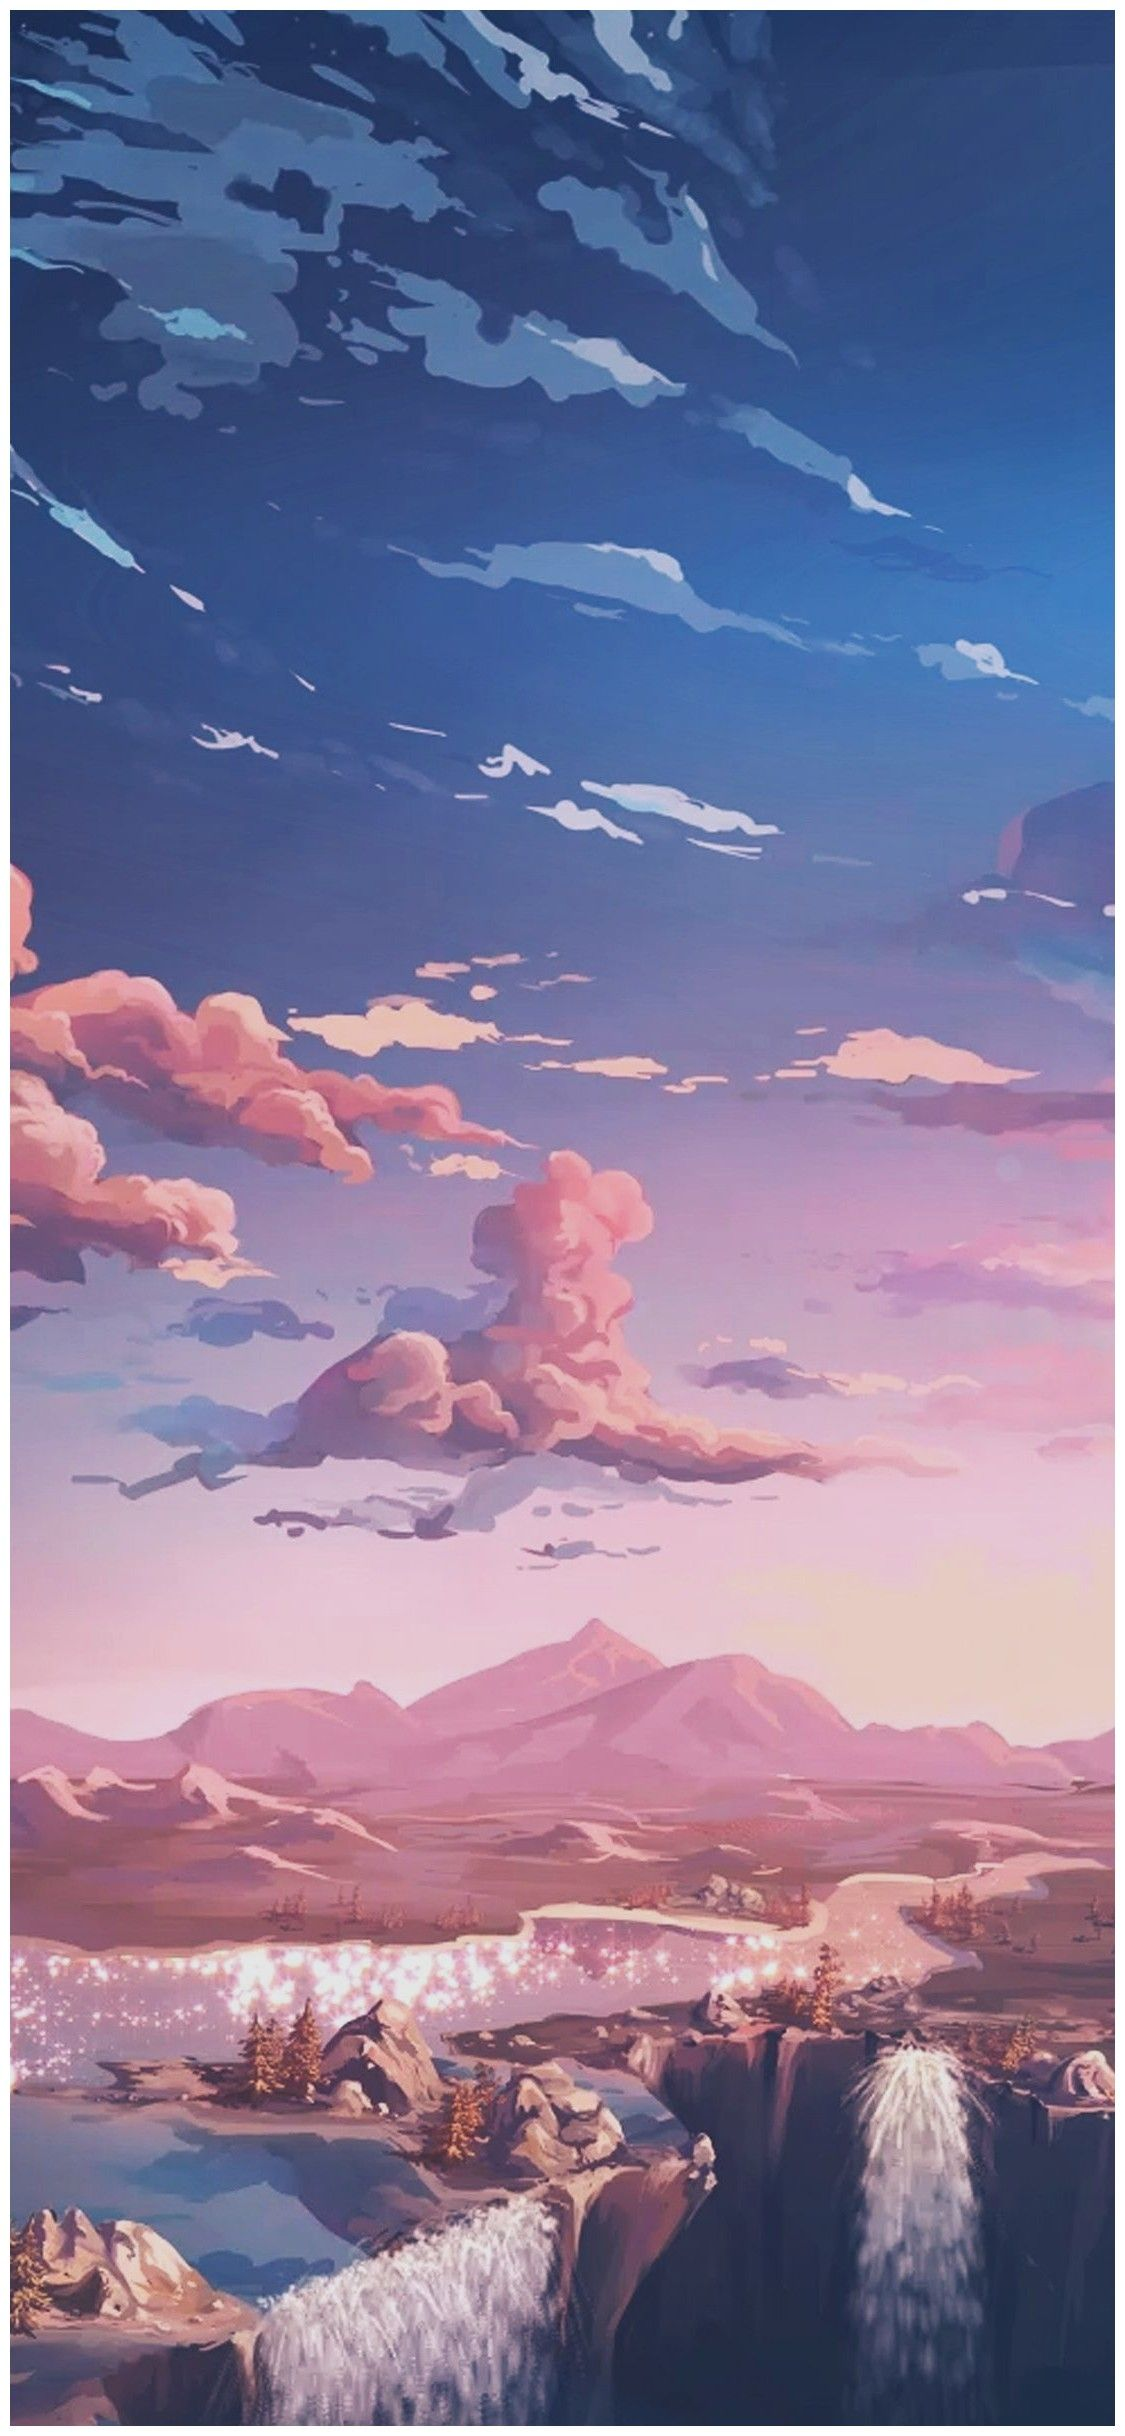 90s Anime Aesthetic Wallpapers Top Free 90s Anime Aesthetic Backgrounds Wallpaperaccess